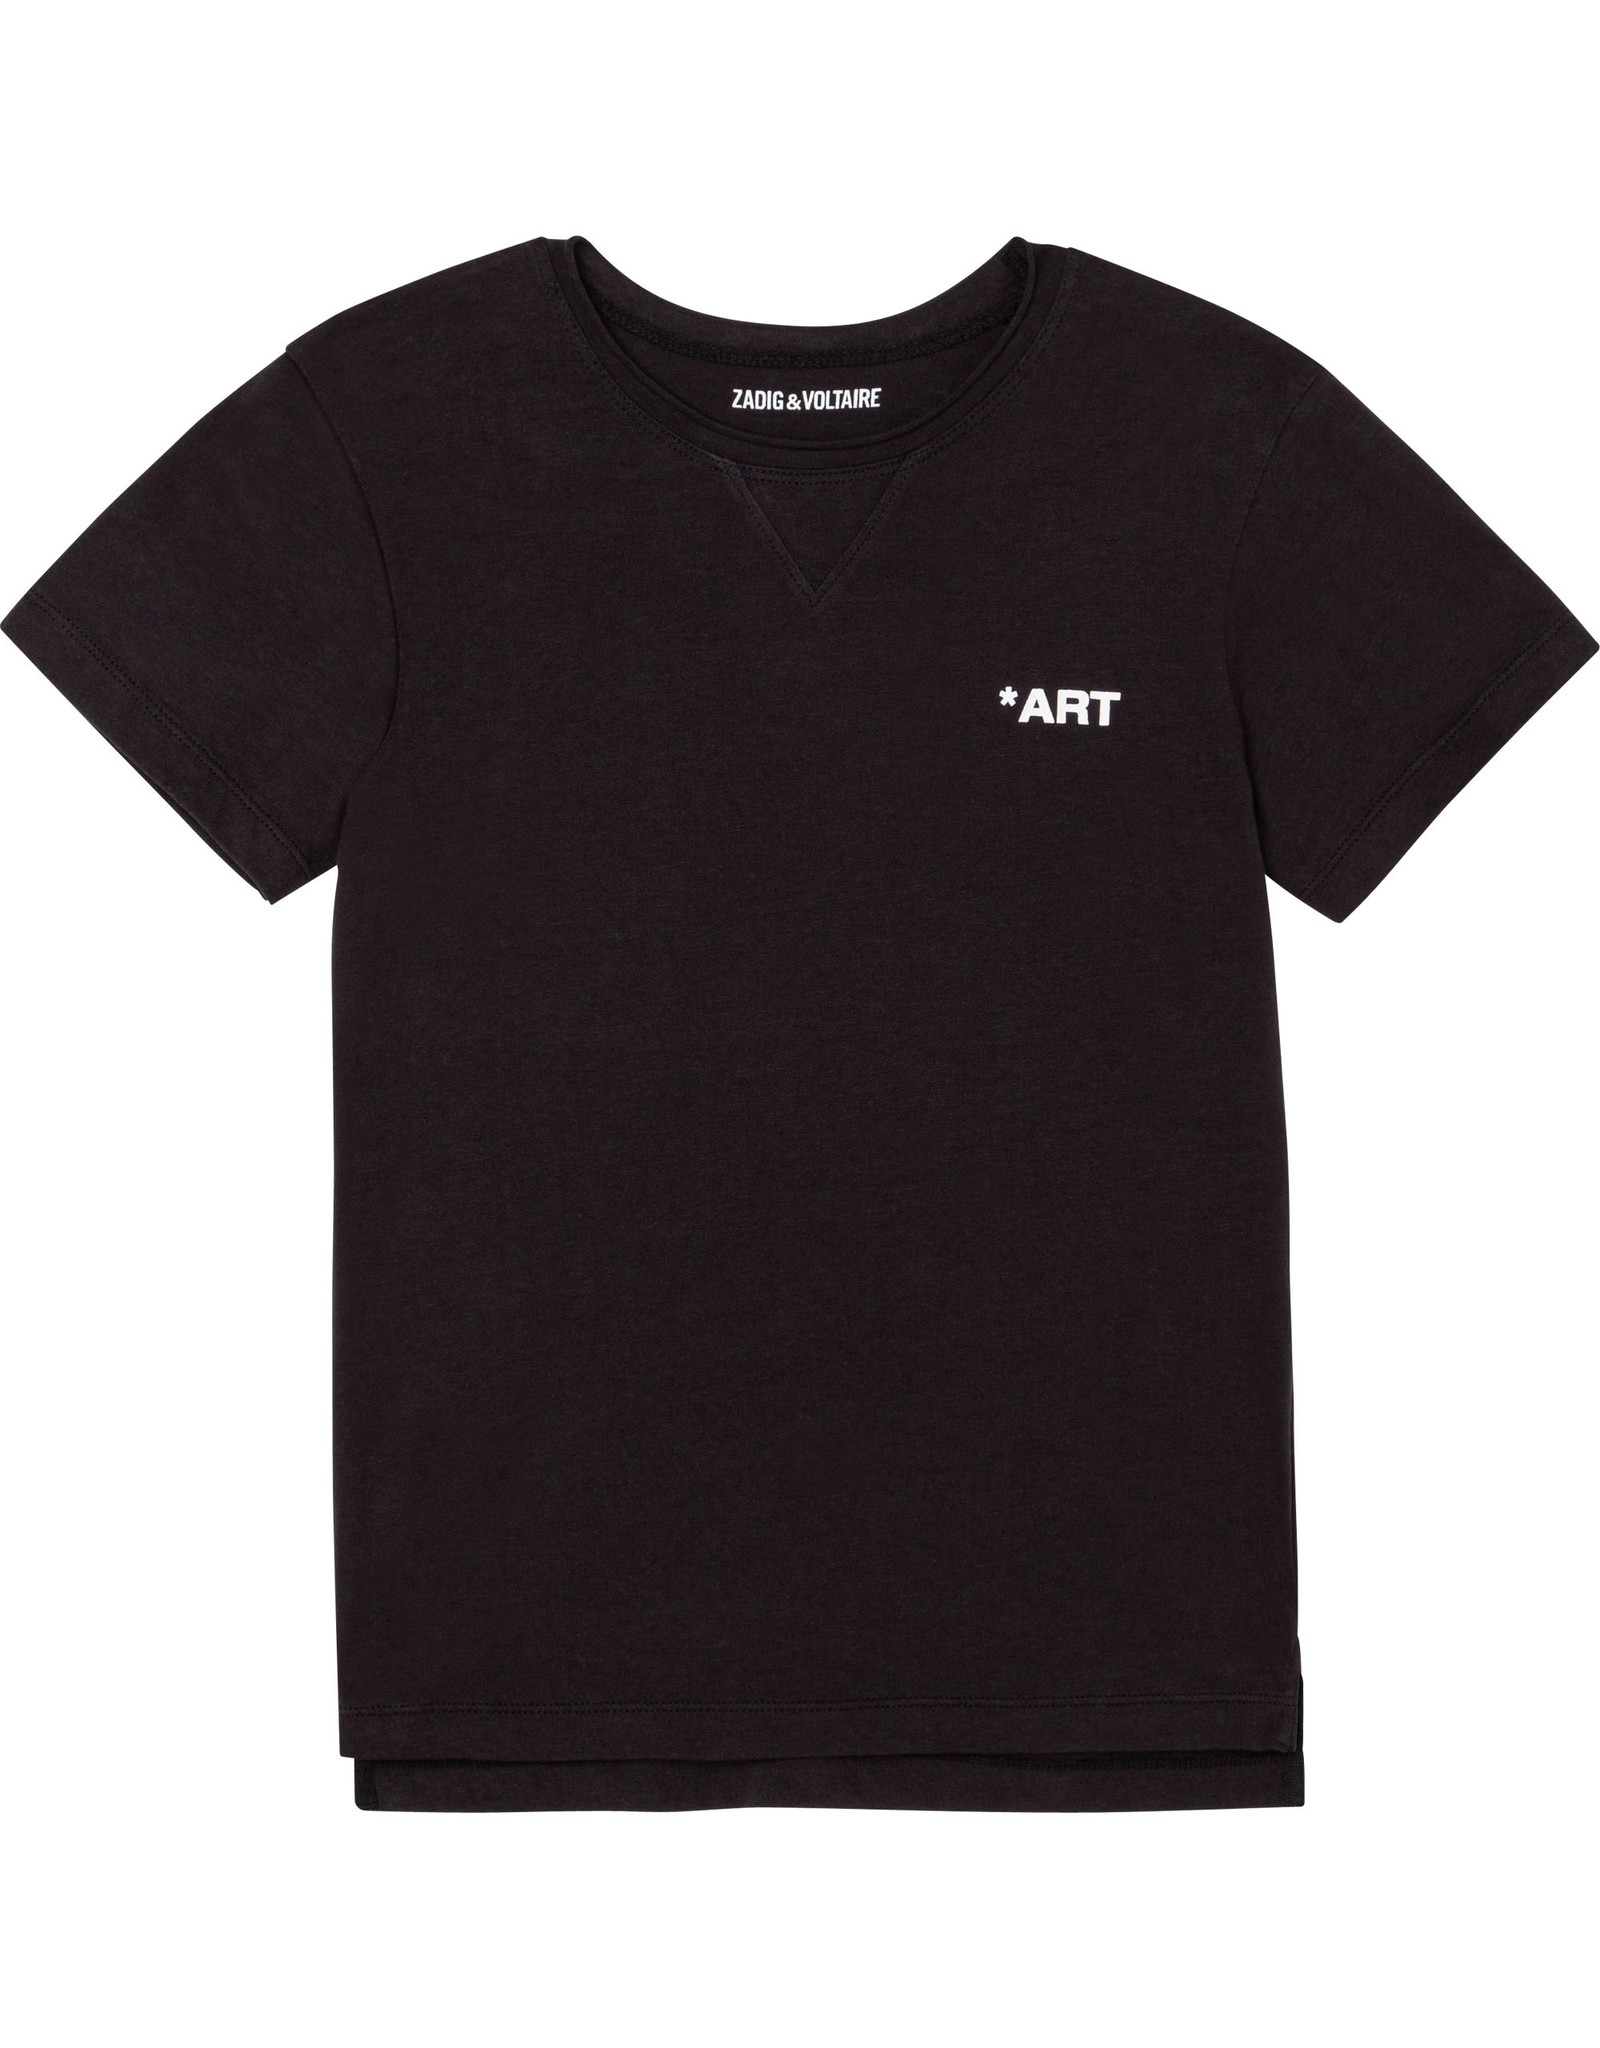 Zadig&Voltaire Z&V SS21 X25257 T-shirt